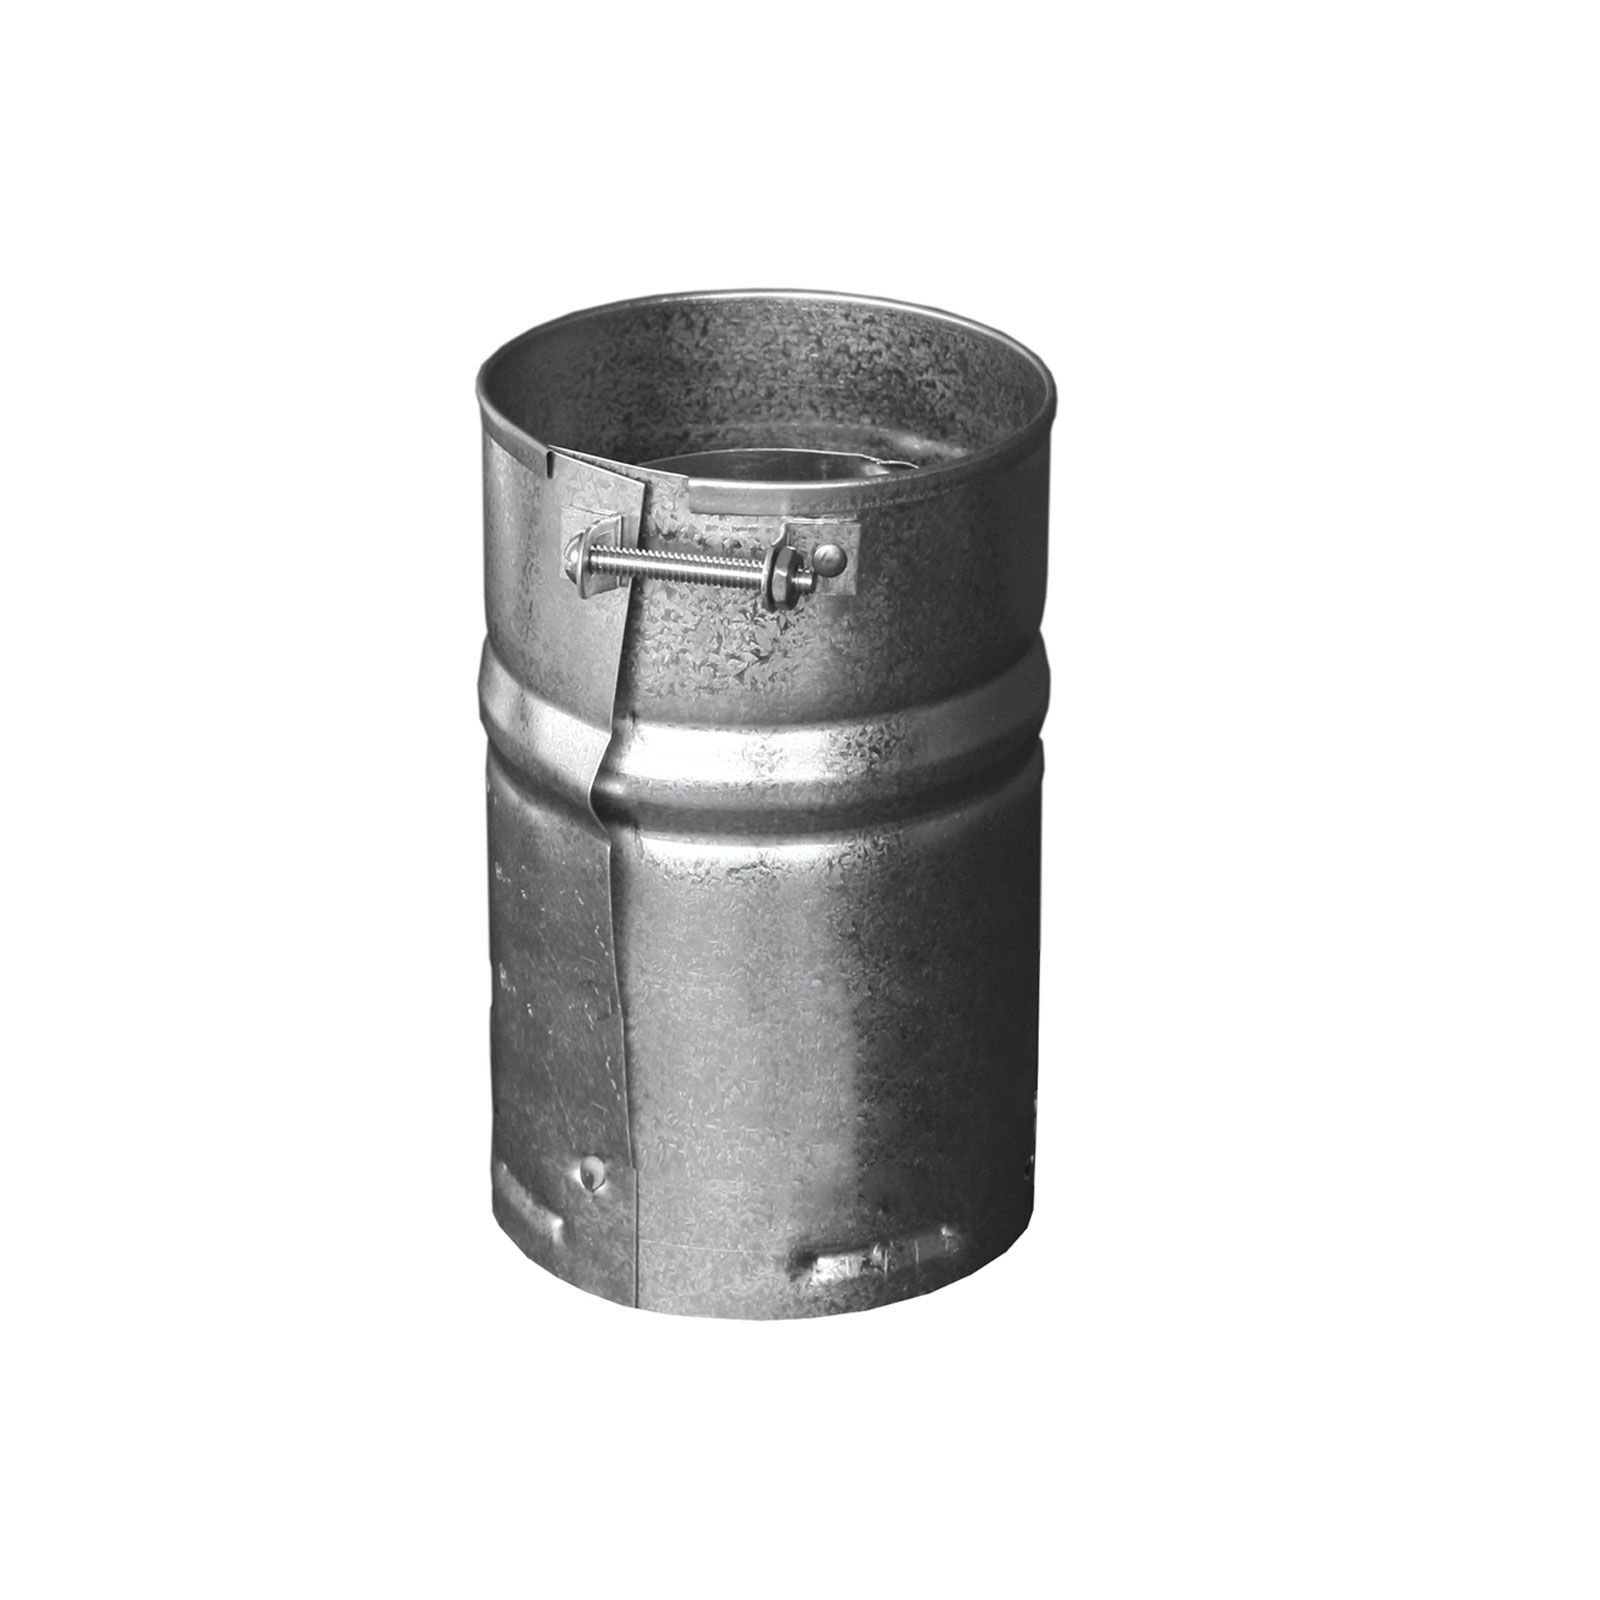 "DuraVent 5GVAF - Aluminum Female Adapter with 5"" Inner Diameter"